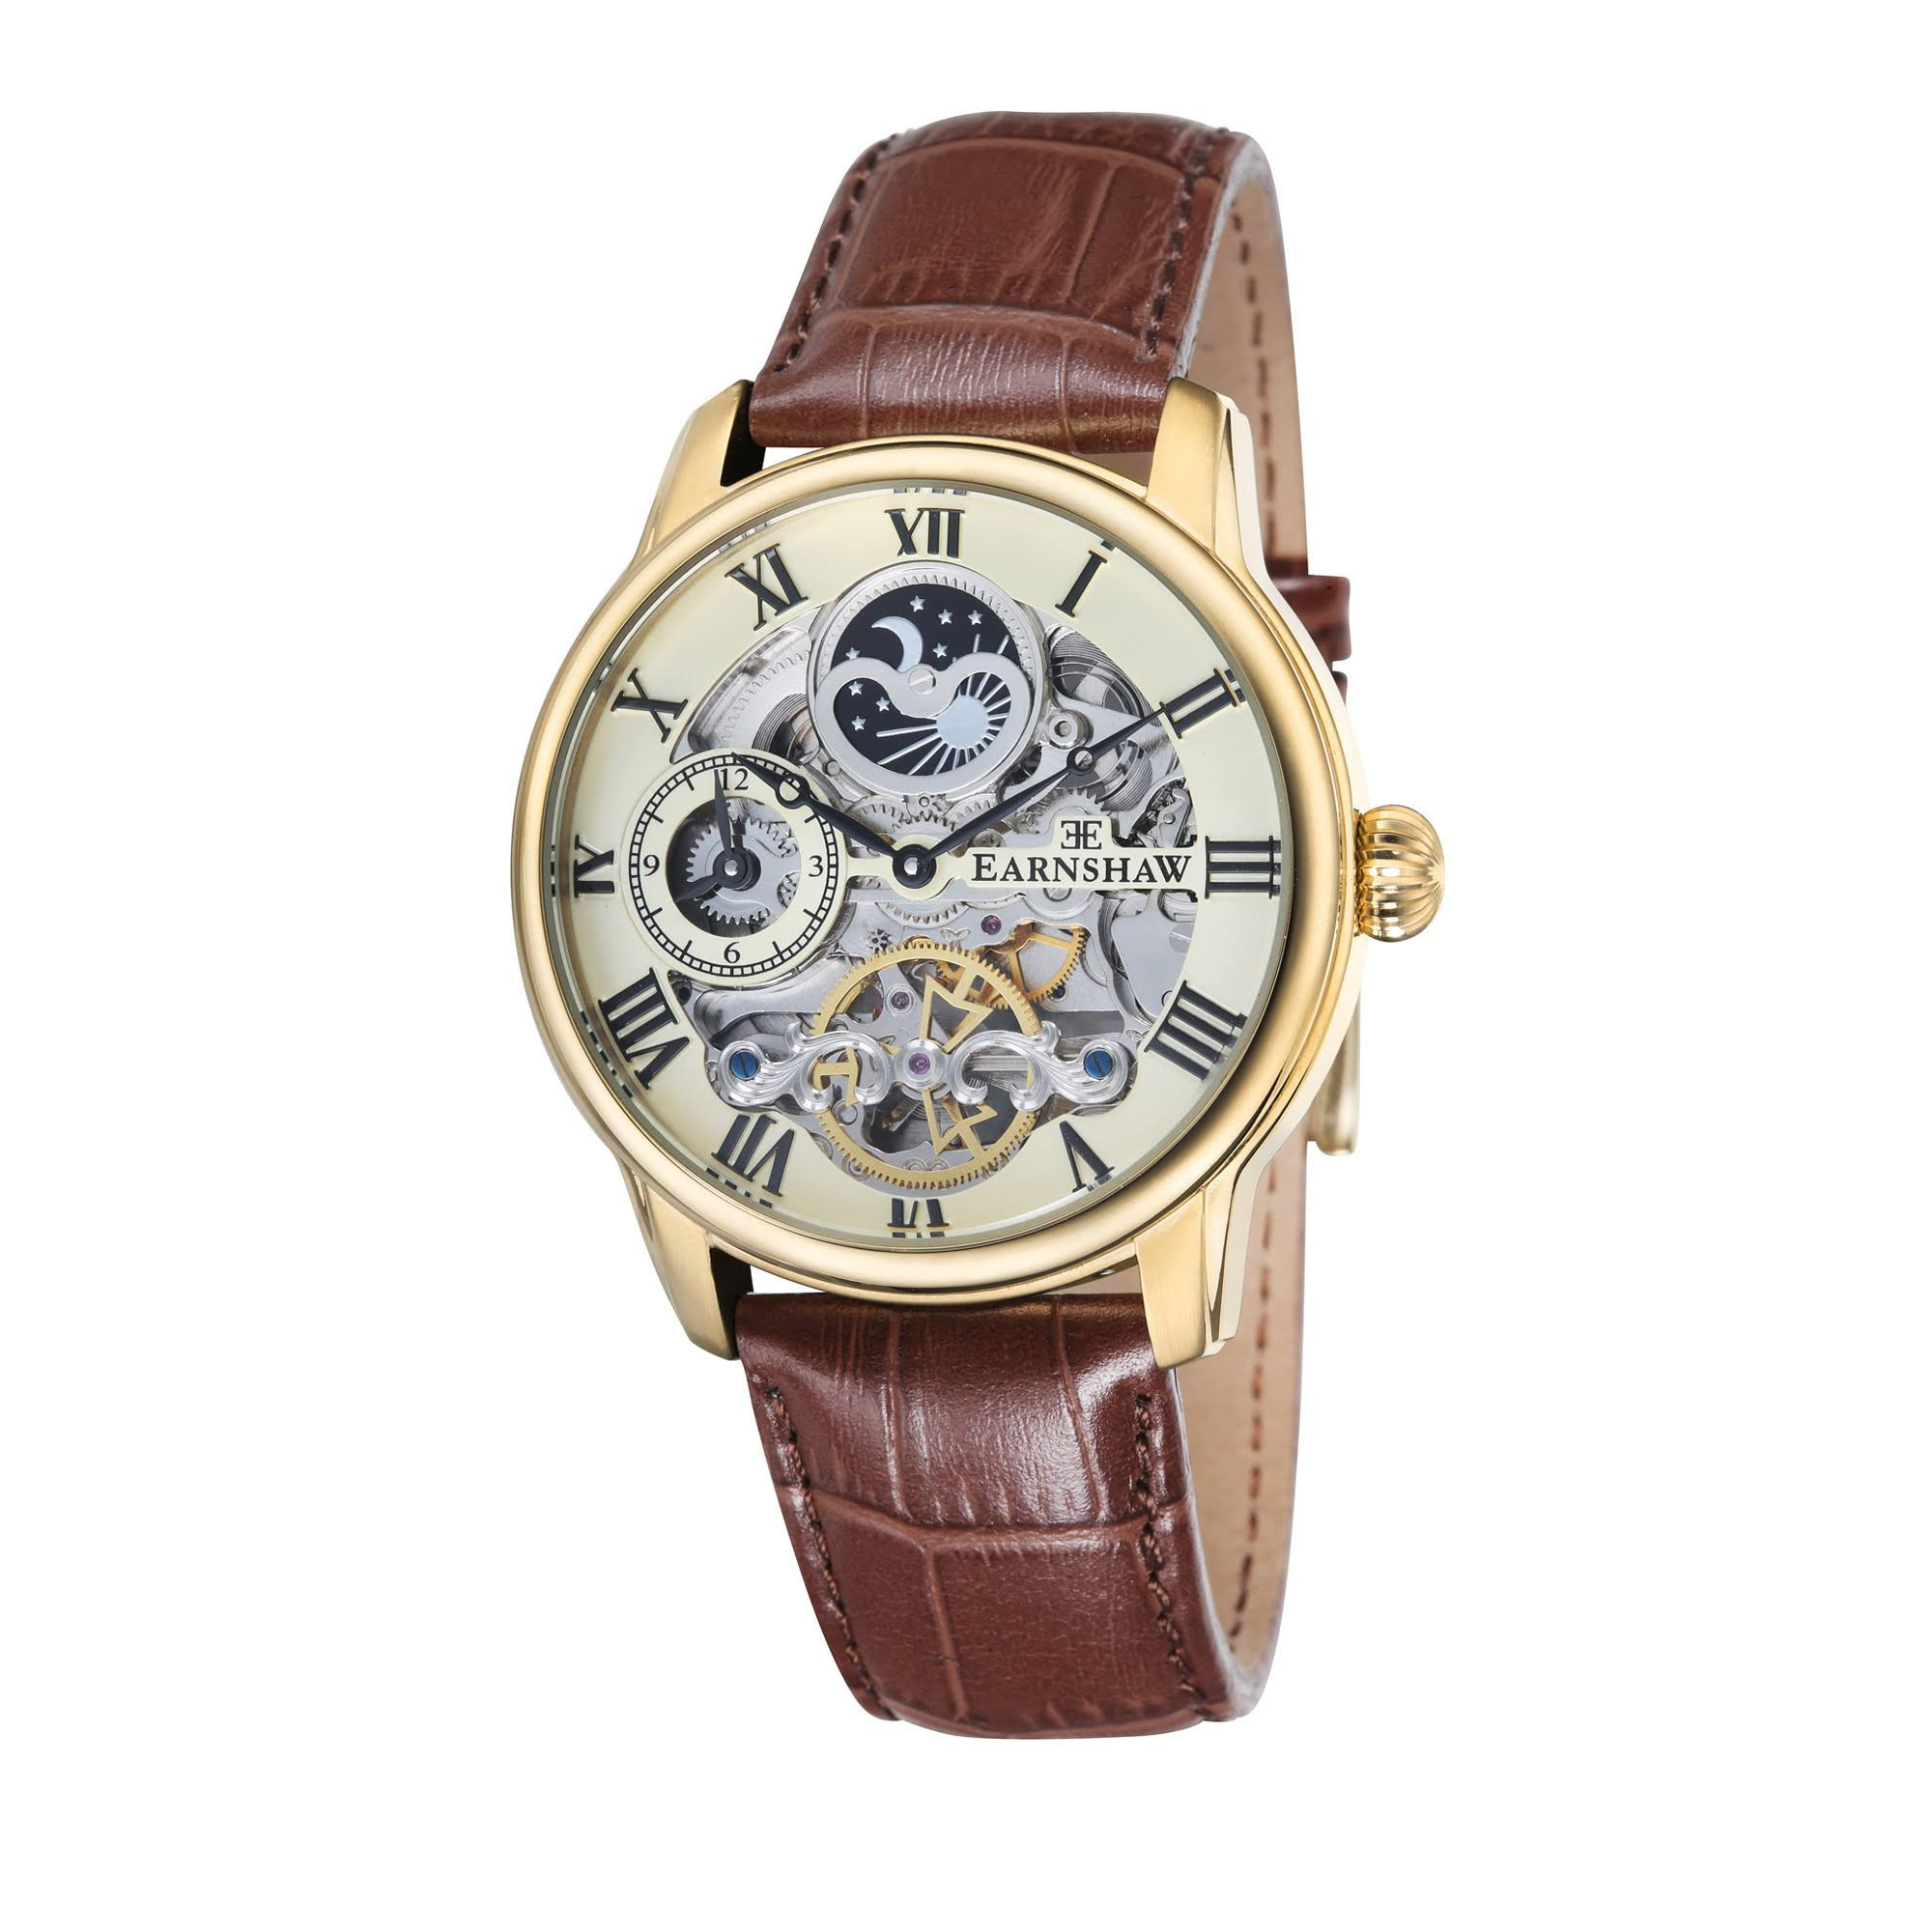 Thomas Earnshaw Londitude Men's Automatic Watch with White Dial Analogue Display and Brown Leather Strap ES-8006-06